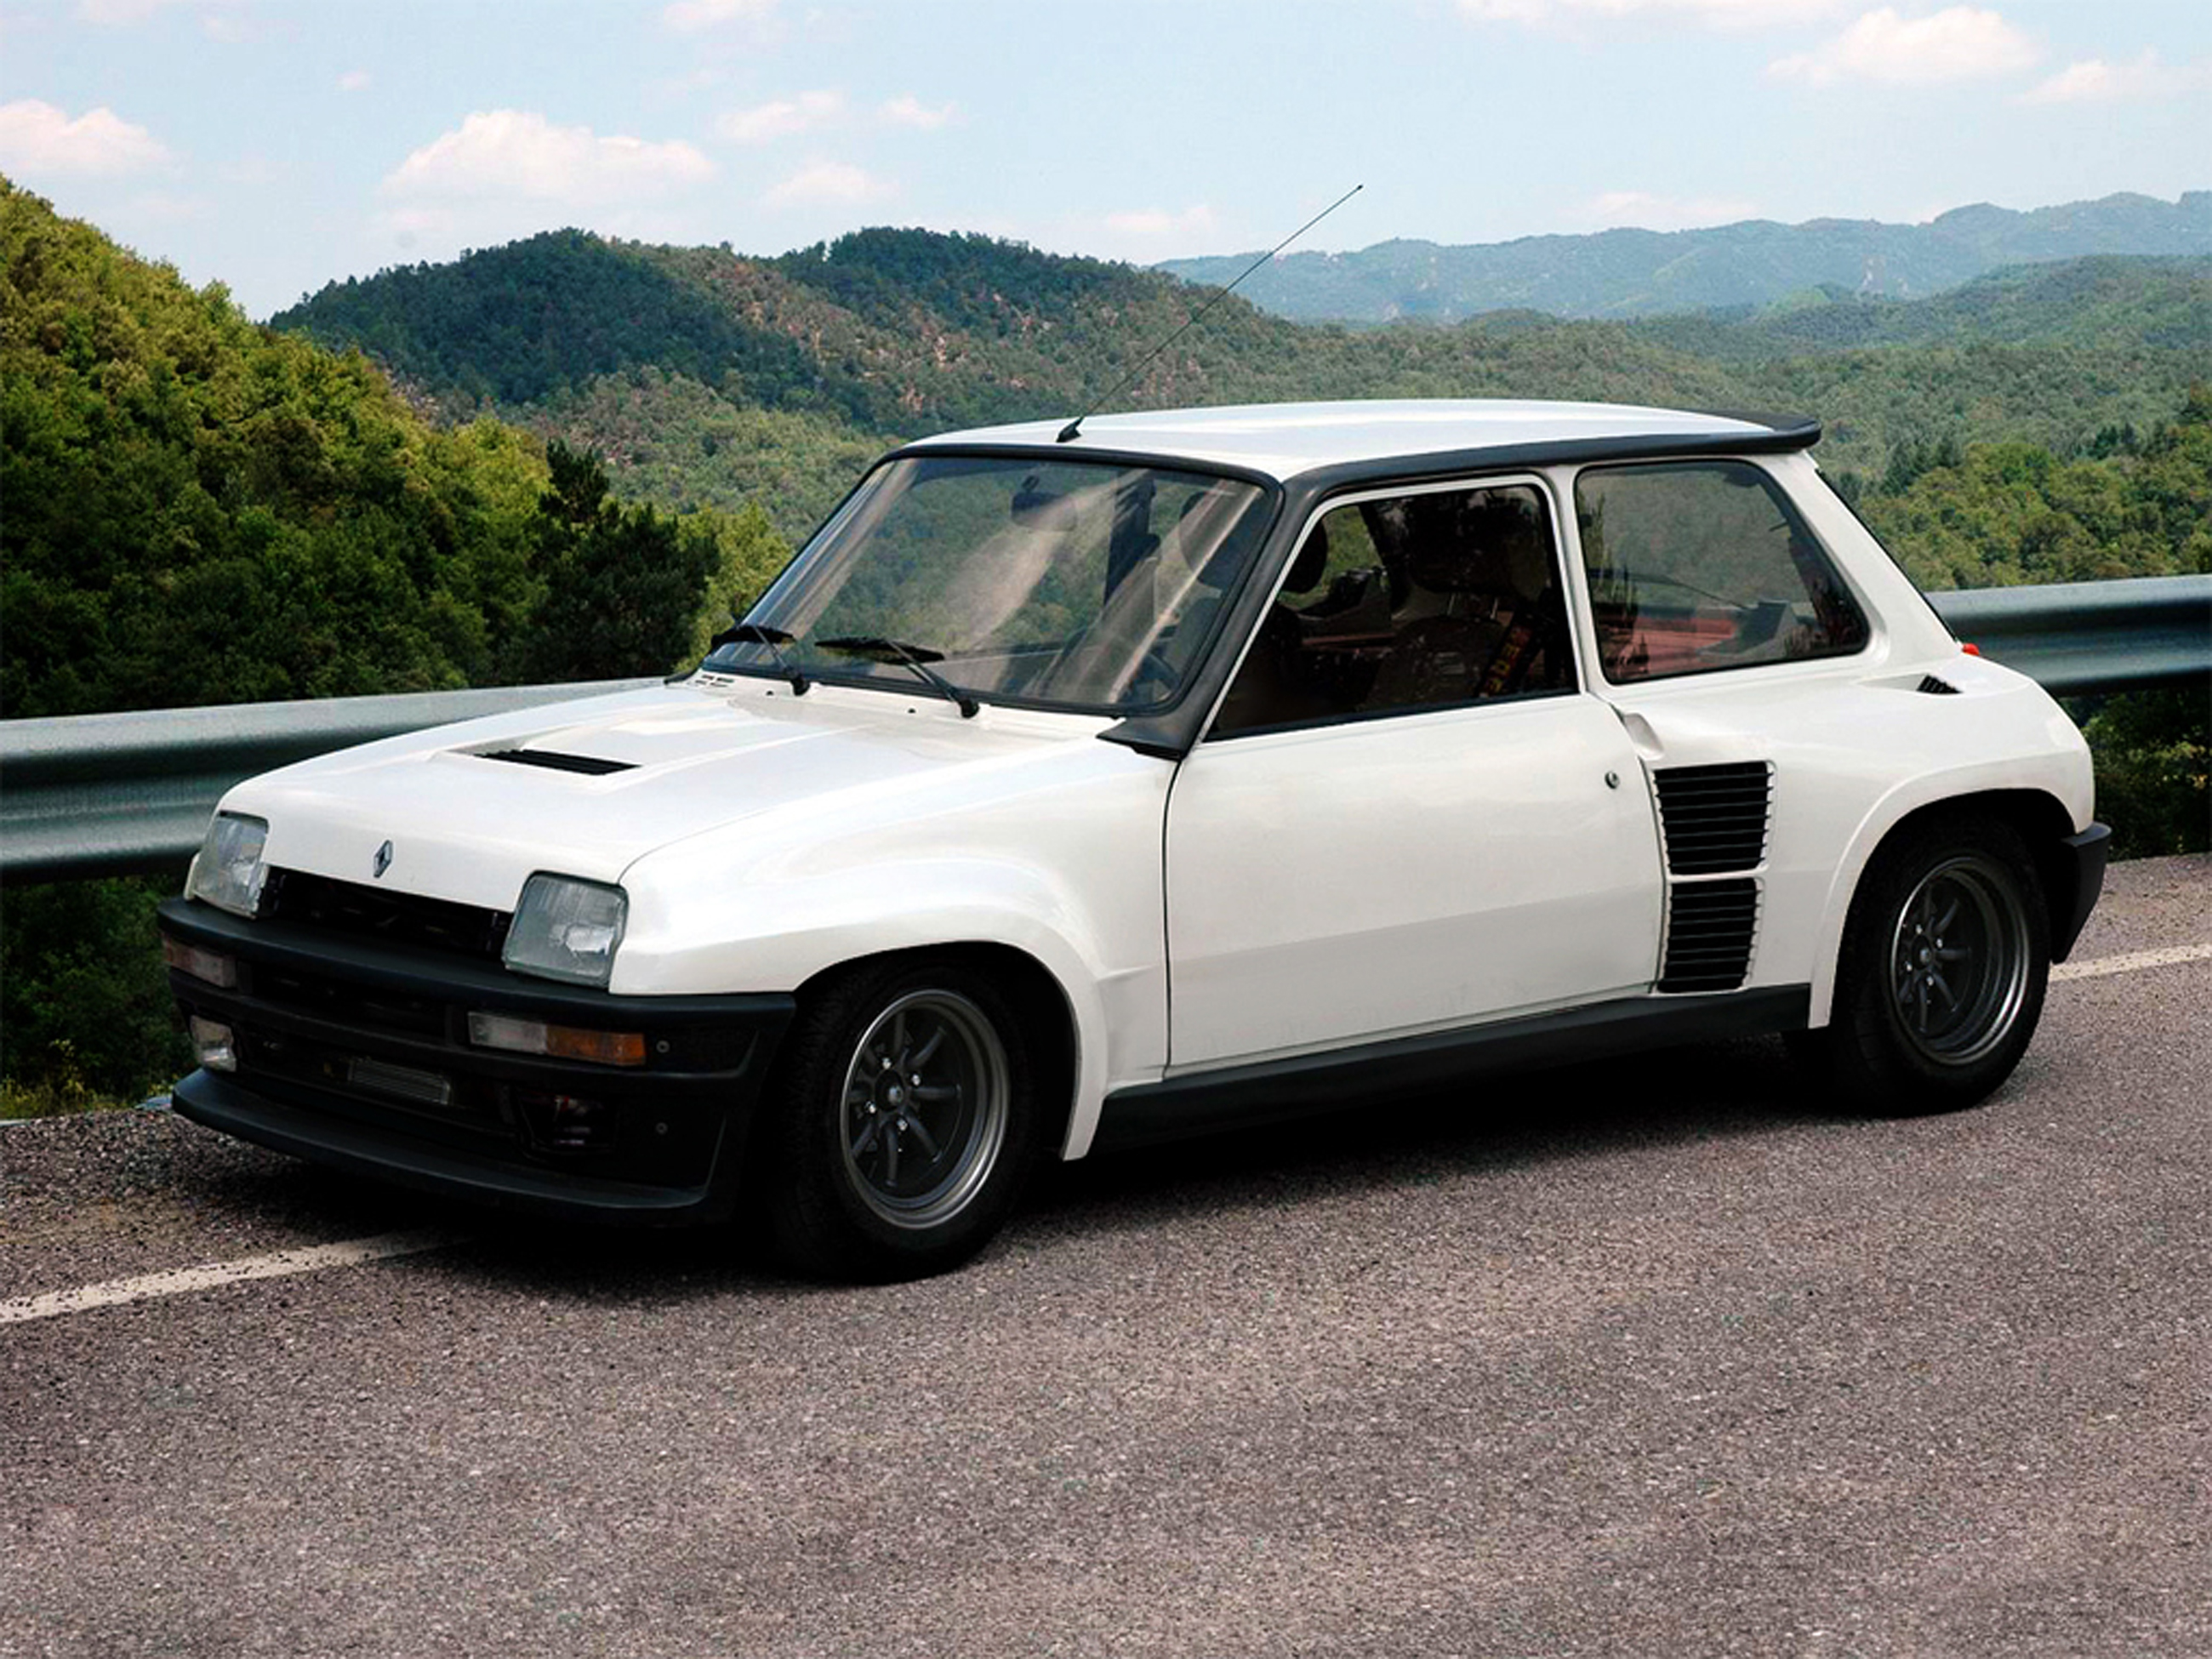 Renault_5_Turbo.jpg